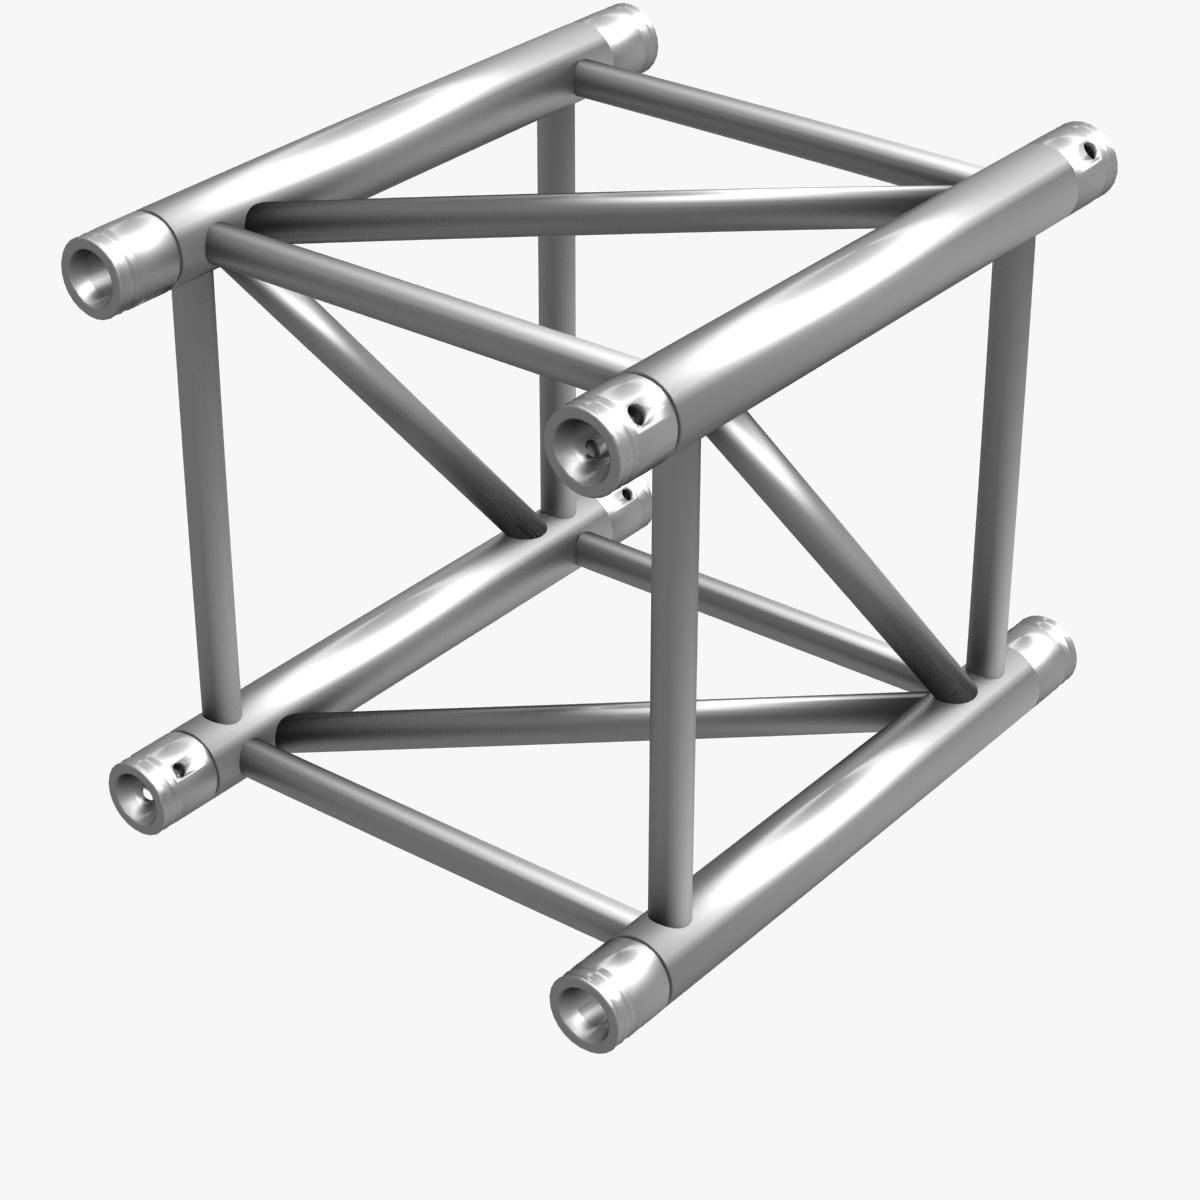 square light trusses (collection 50 modular) 3d model 3ds max dxf fbx c4d dae texture obj 216200